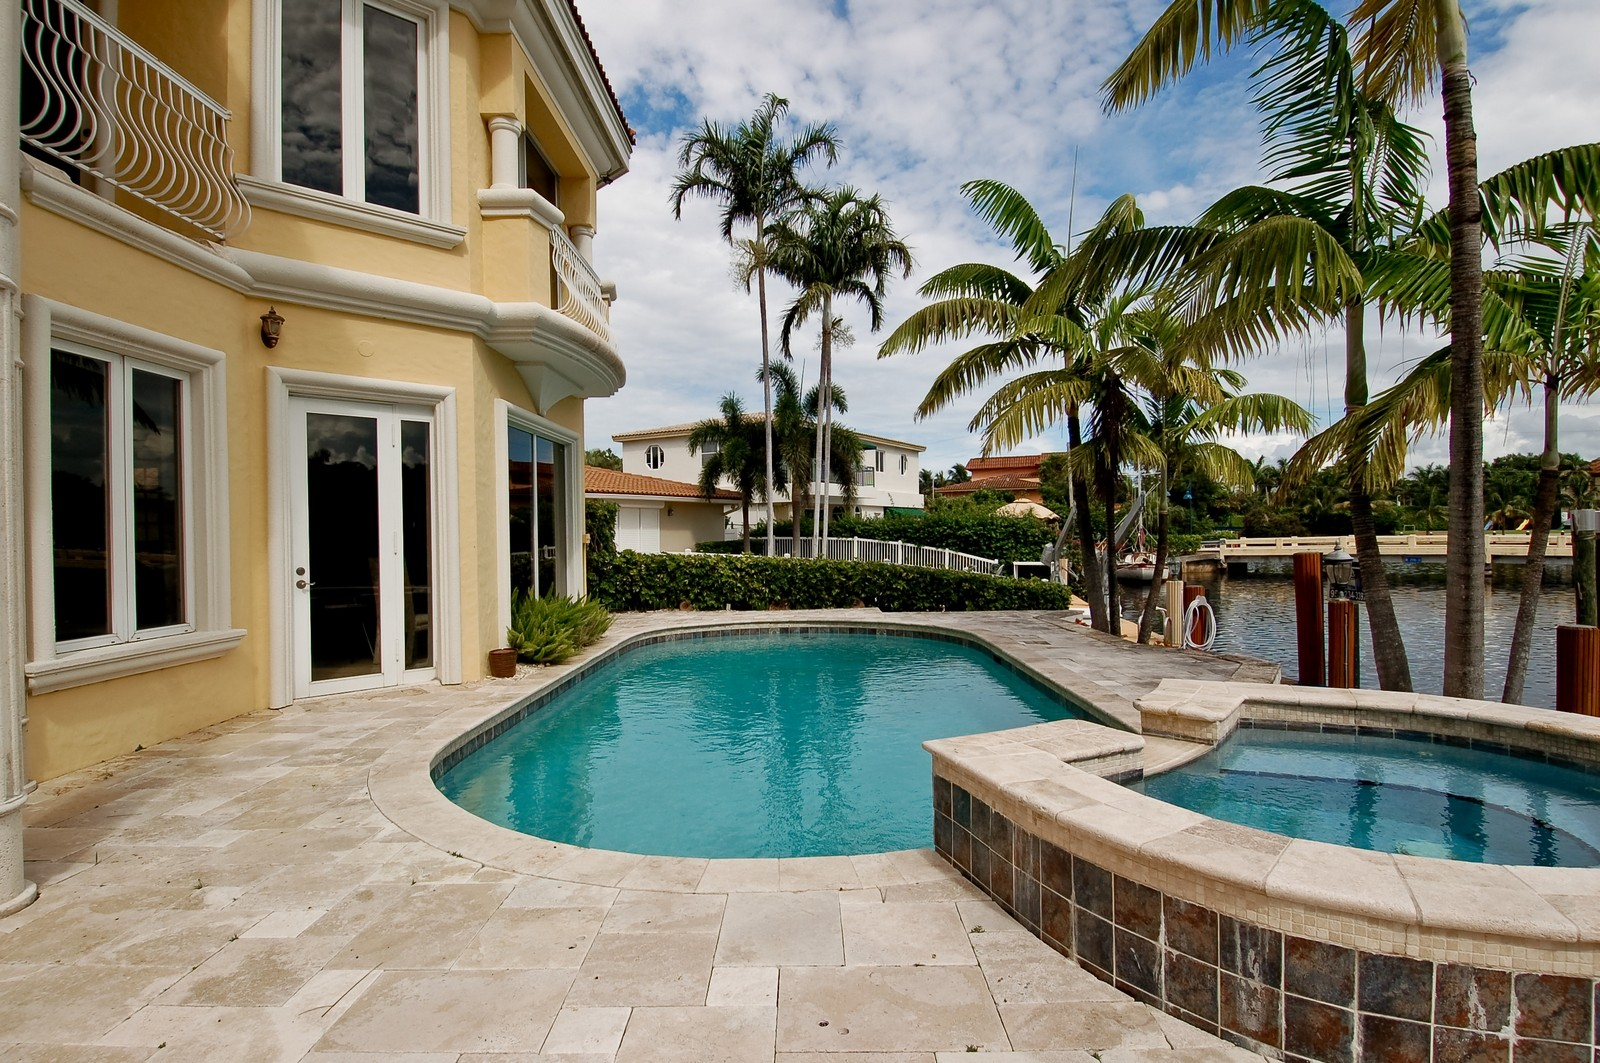 Real Estate Photography - 2325 NE 28th Ct, Lighthouse Point, FL, 33064 - Pool